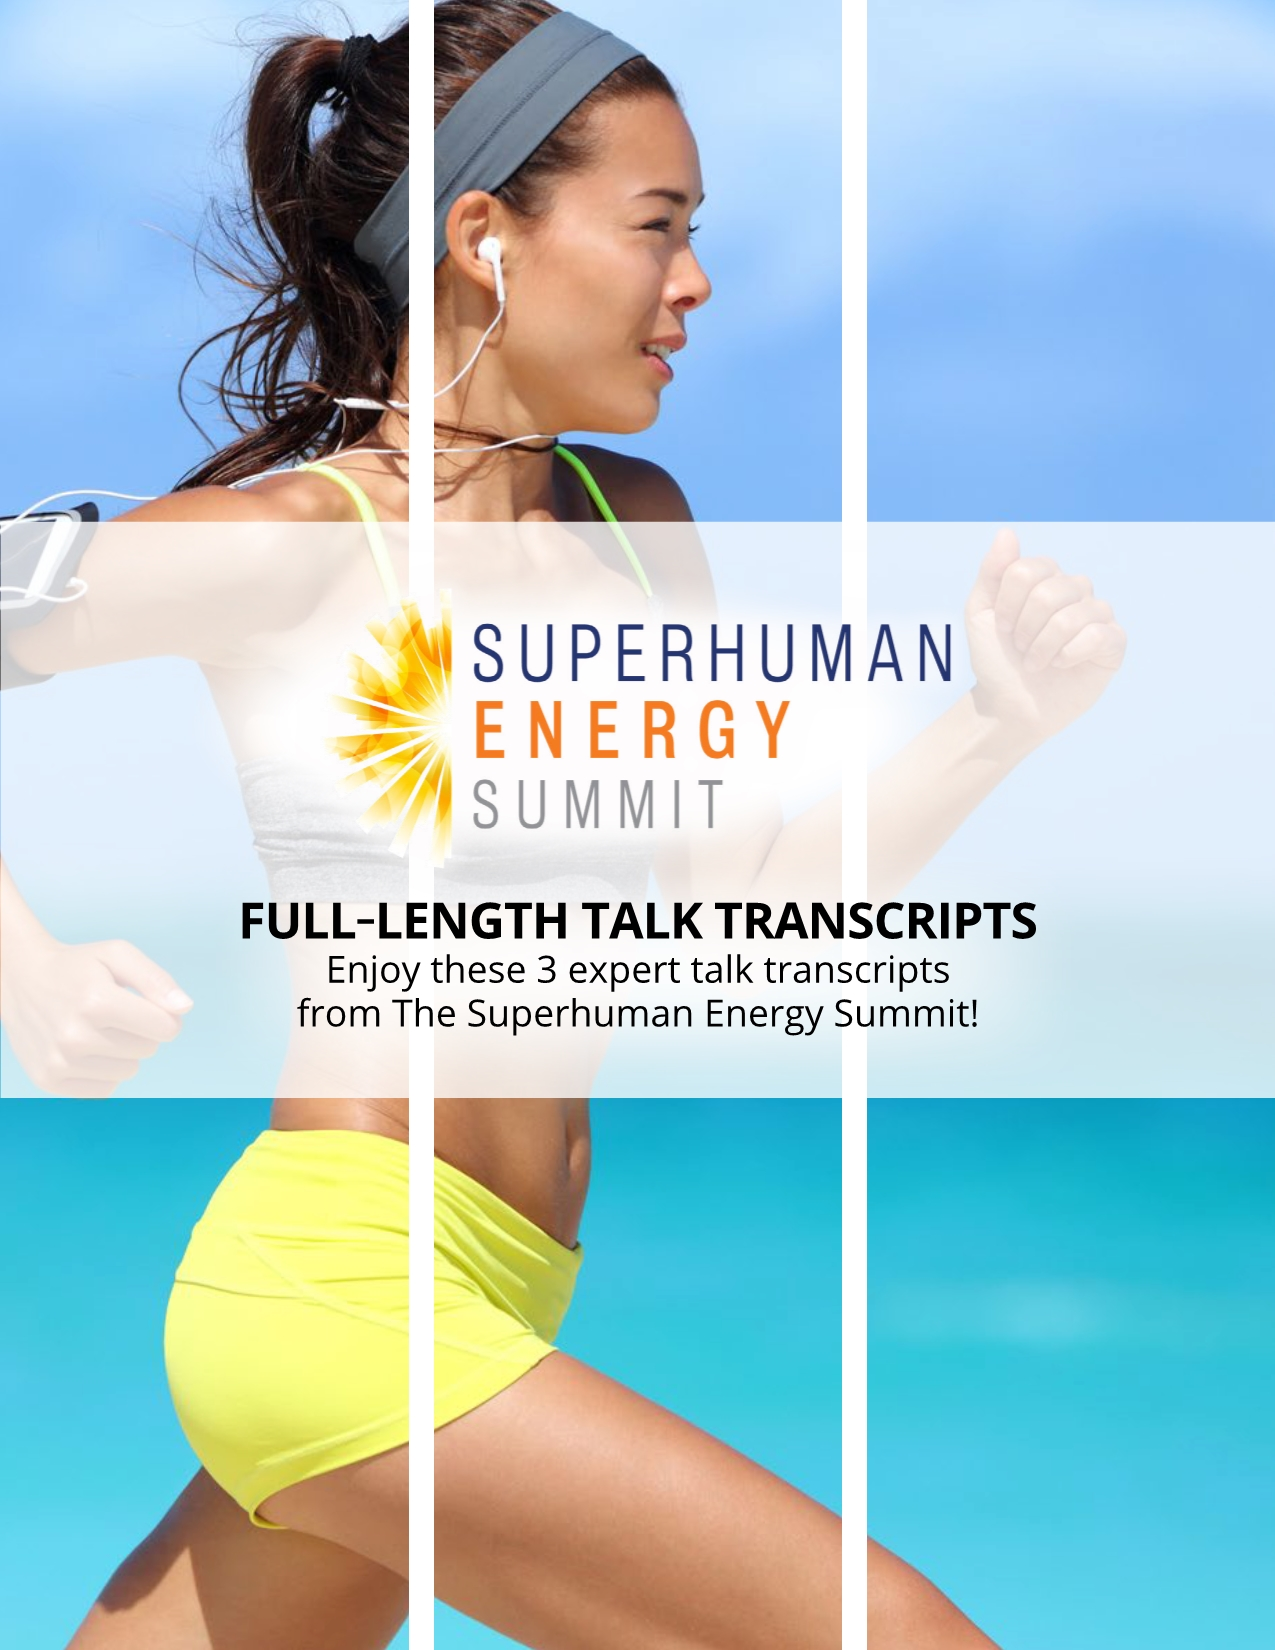 3 Interview Transcripts from The Superhuman Energy Summit